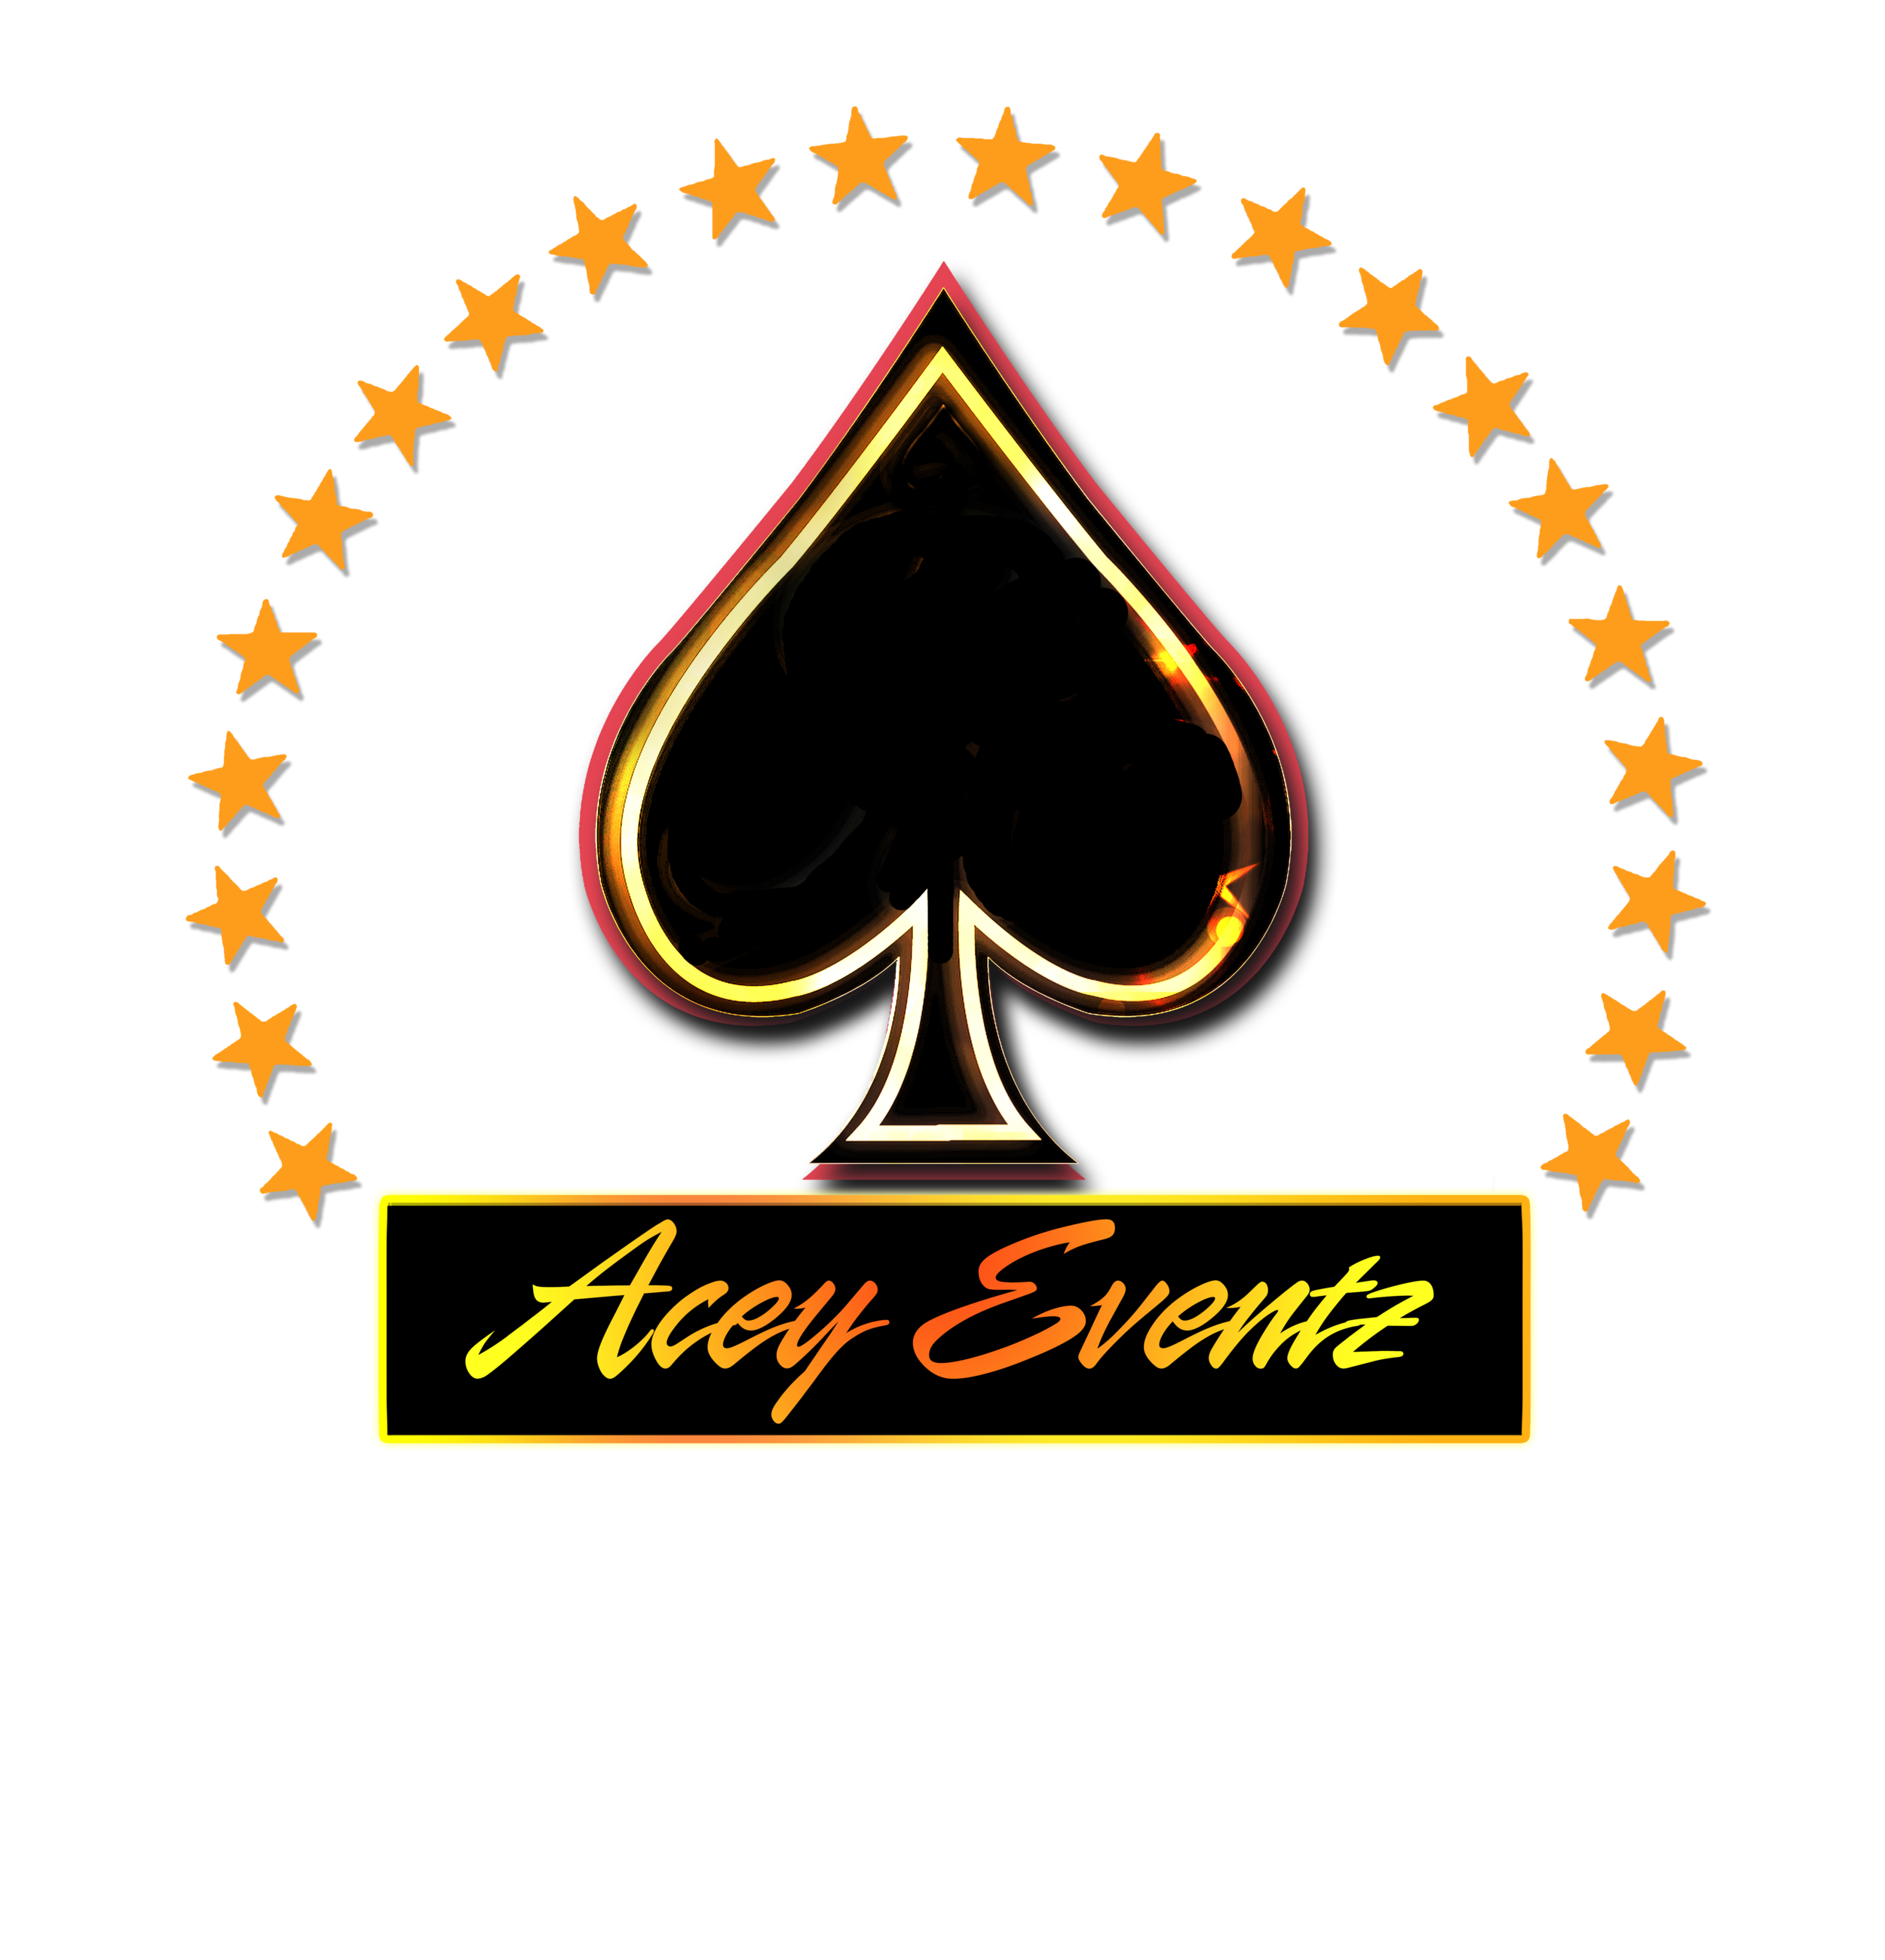 Acey Eventz (New Logo).png